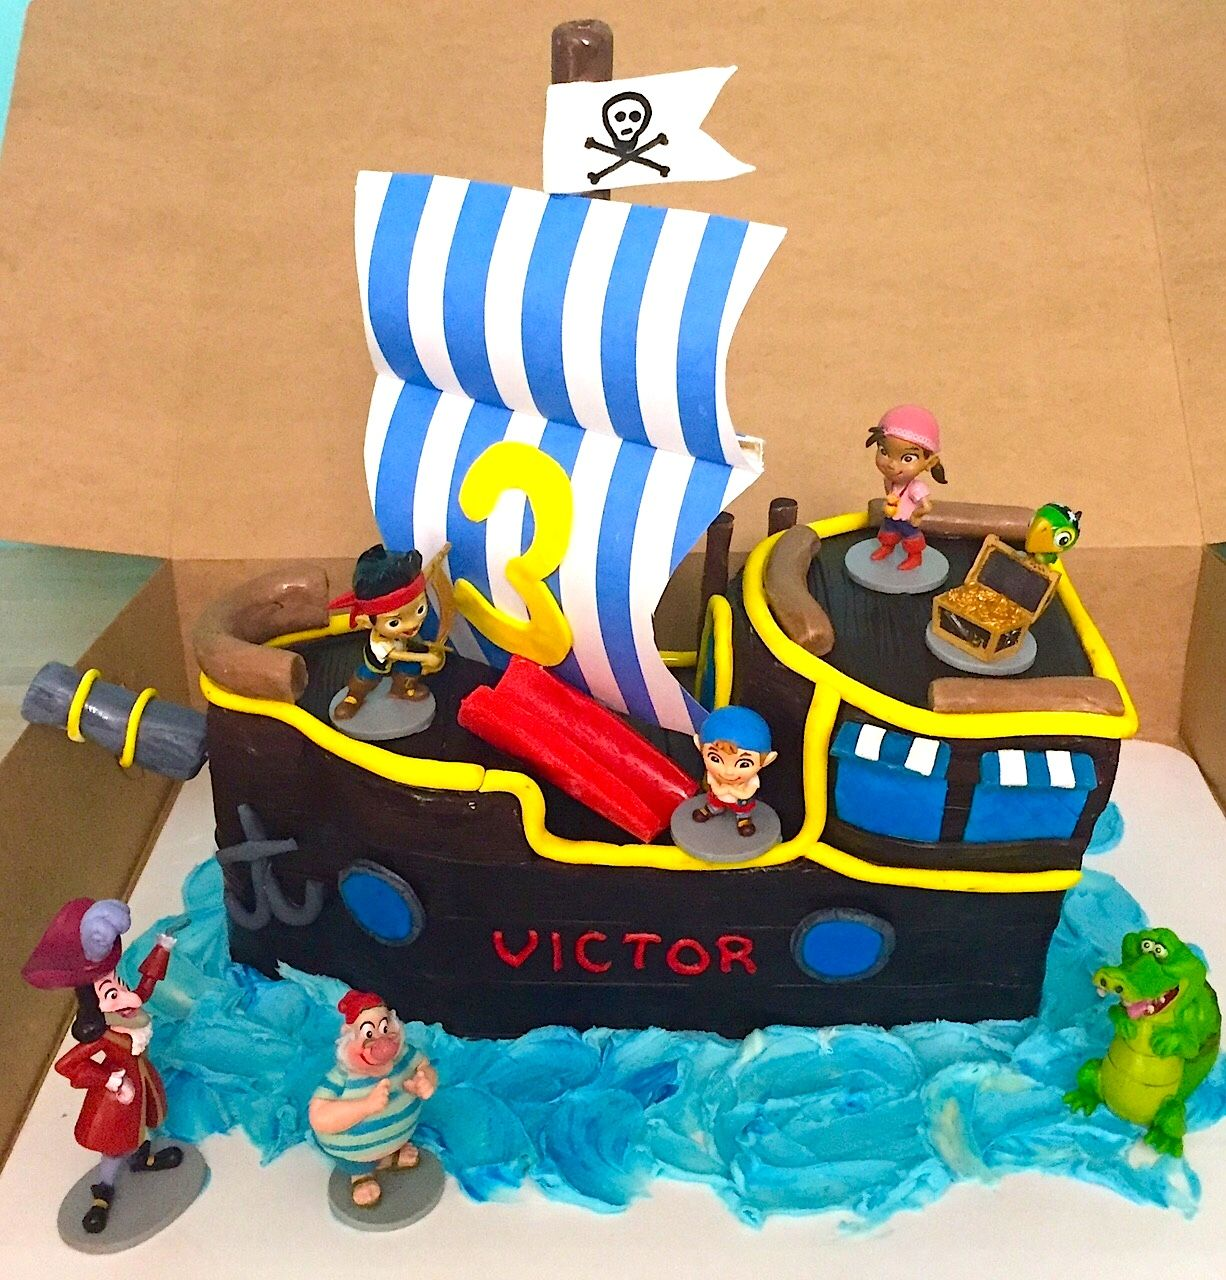 Jake and The Never Land Pirates Cake for Victors 3rd Birthday